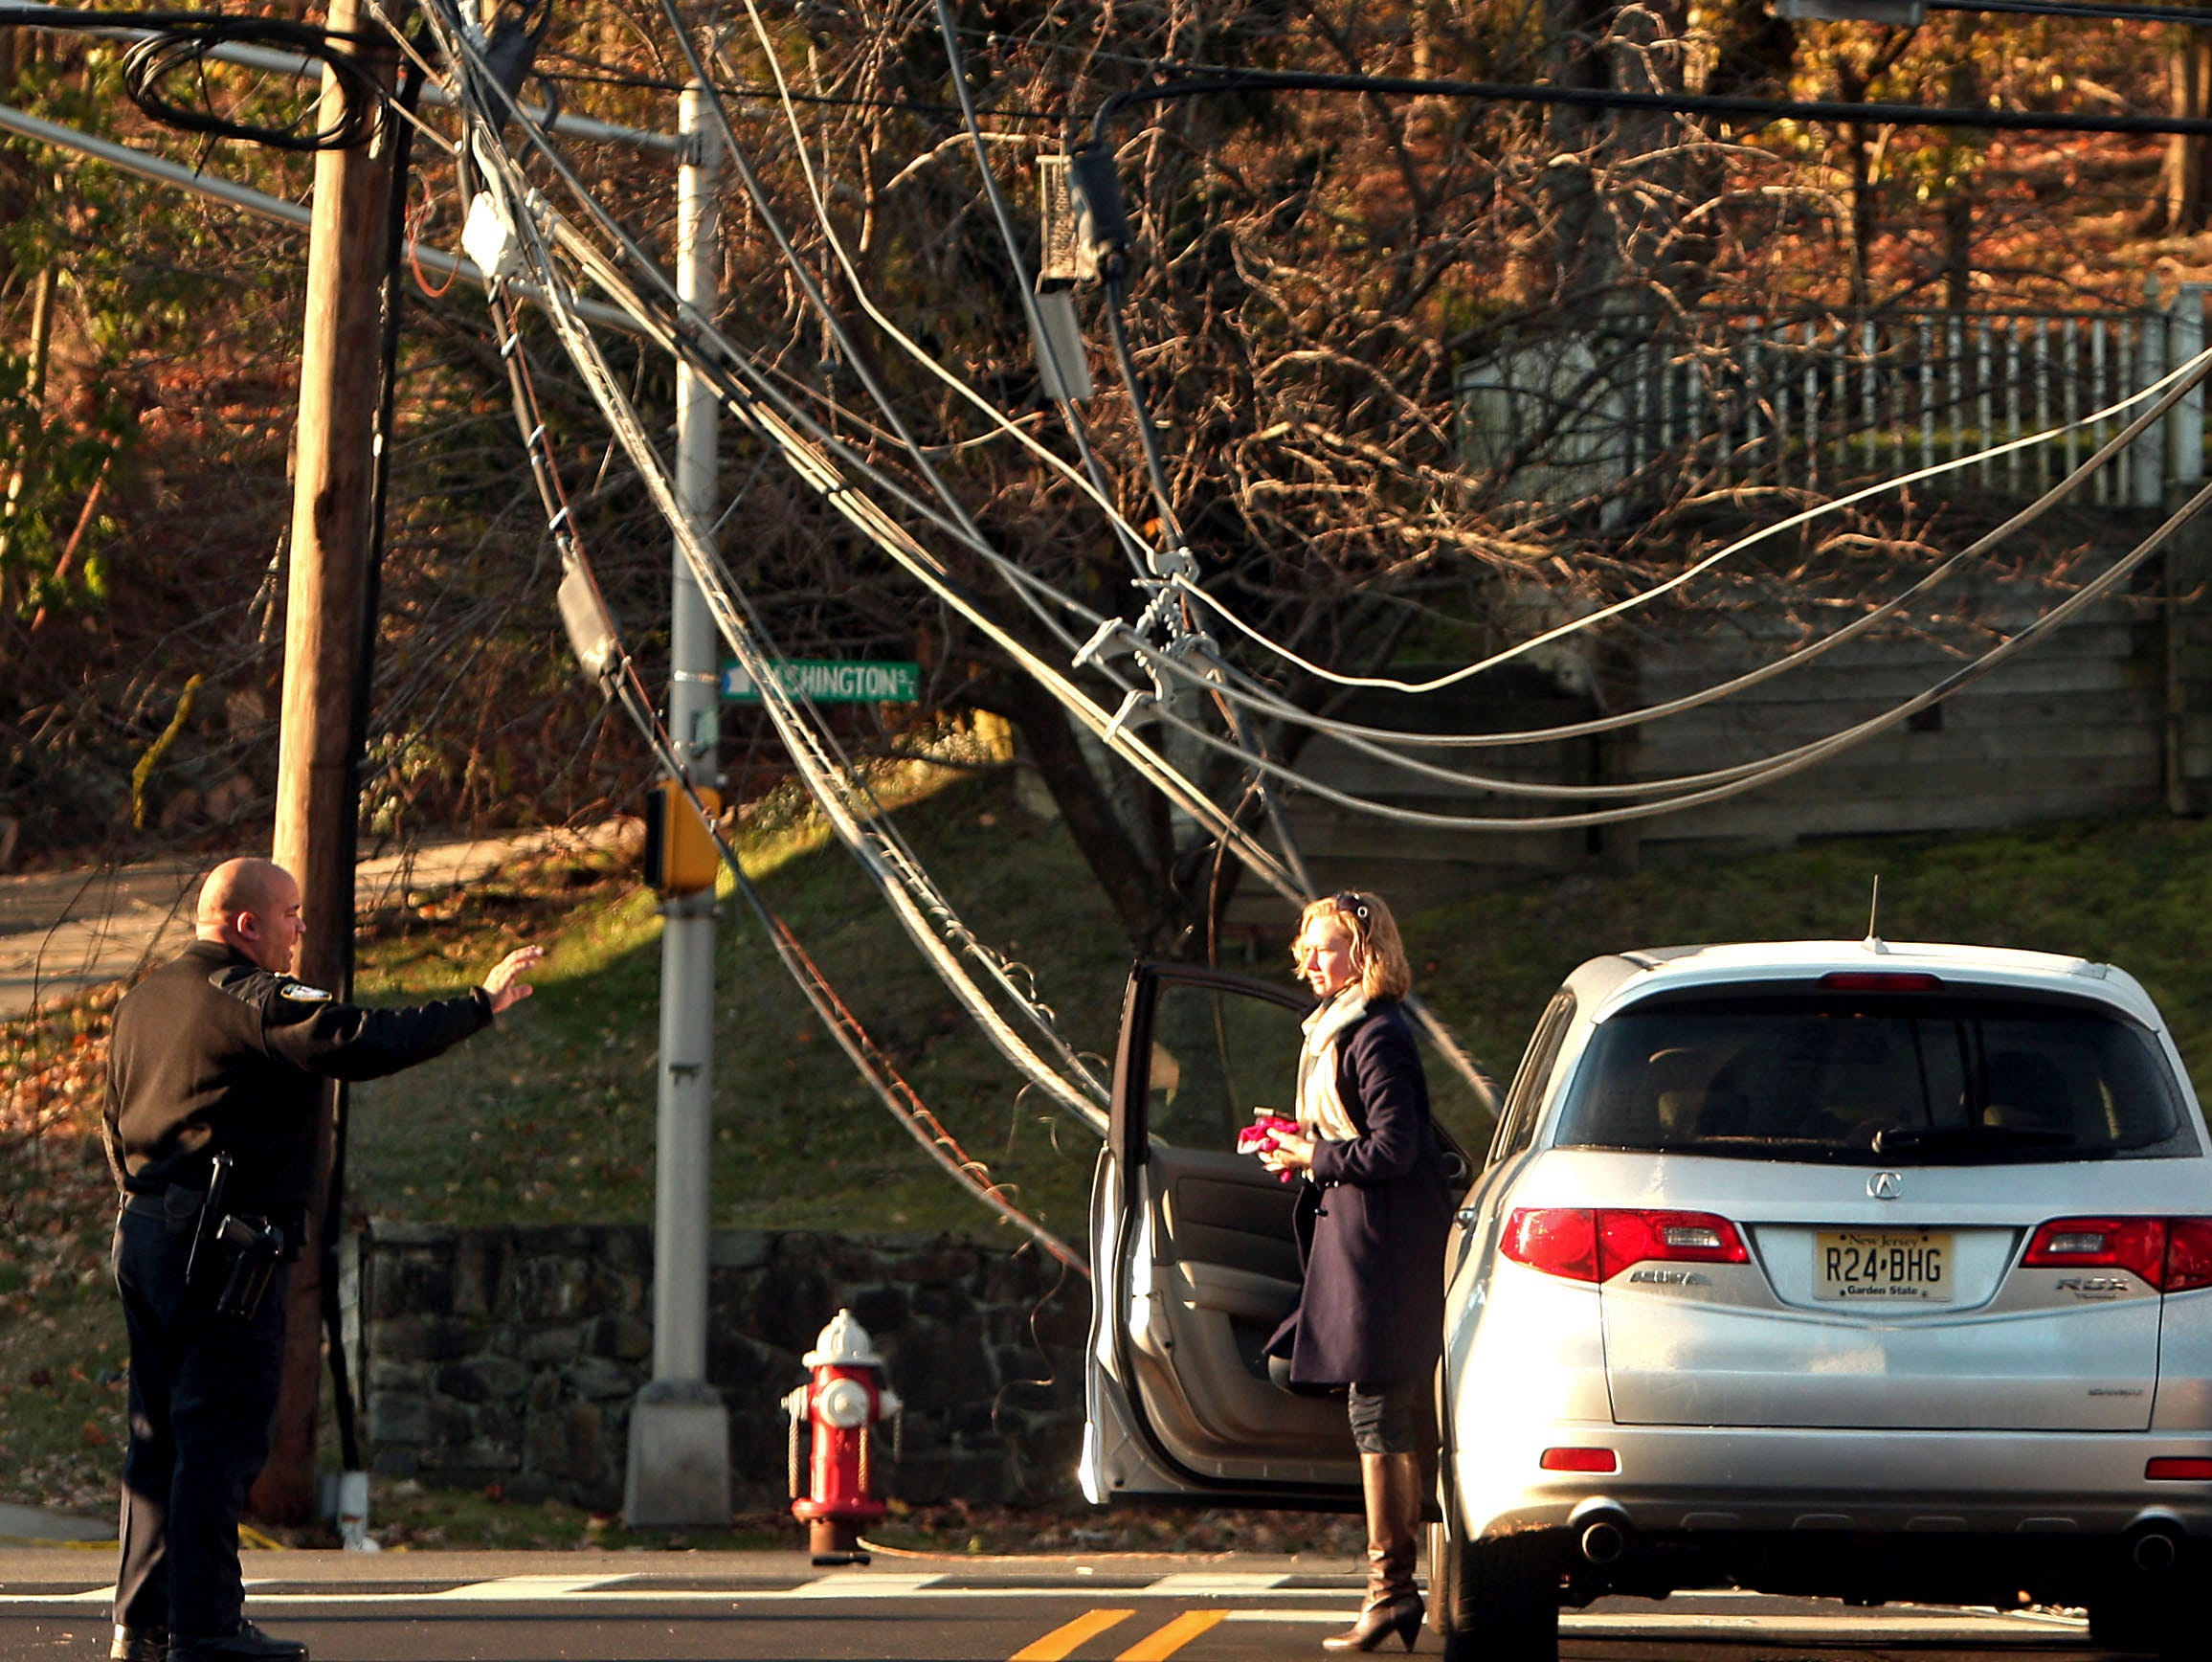 Morristown, N.J.- November 6, 2012-- A Morristown Police Officer talks to a woman carefully exiting her car after an early morning accident that left two cars draped in power lines on Washington Street in Morristown.Bob Karp/Staff Photographer/DAILY RECORD